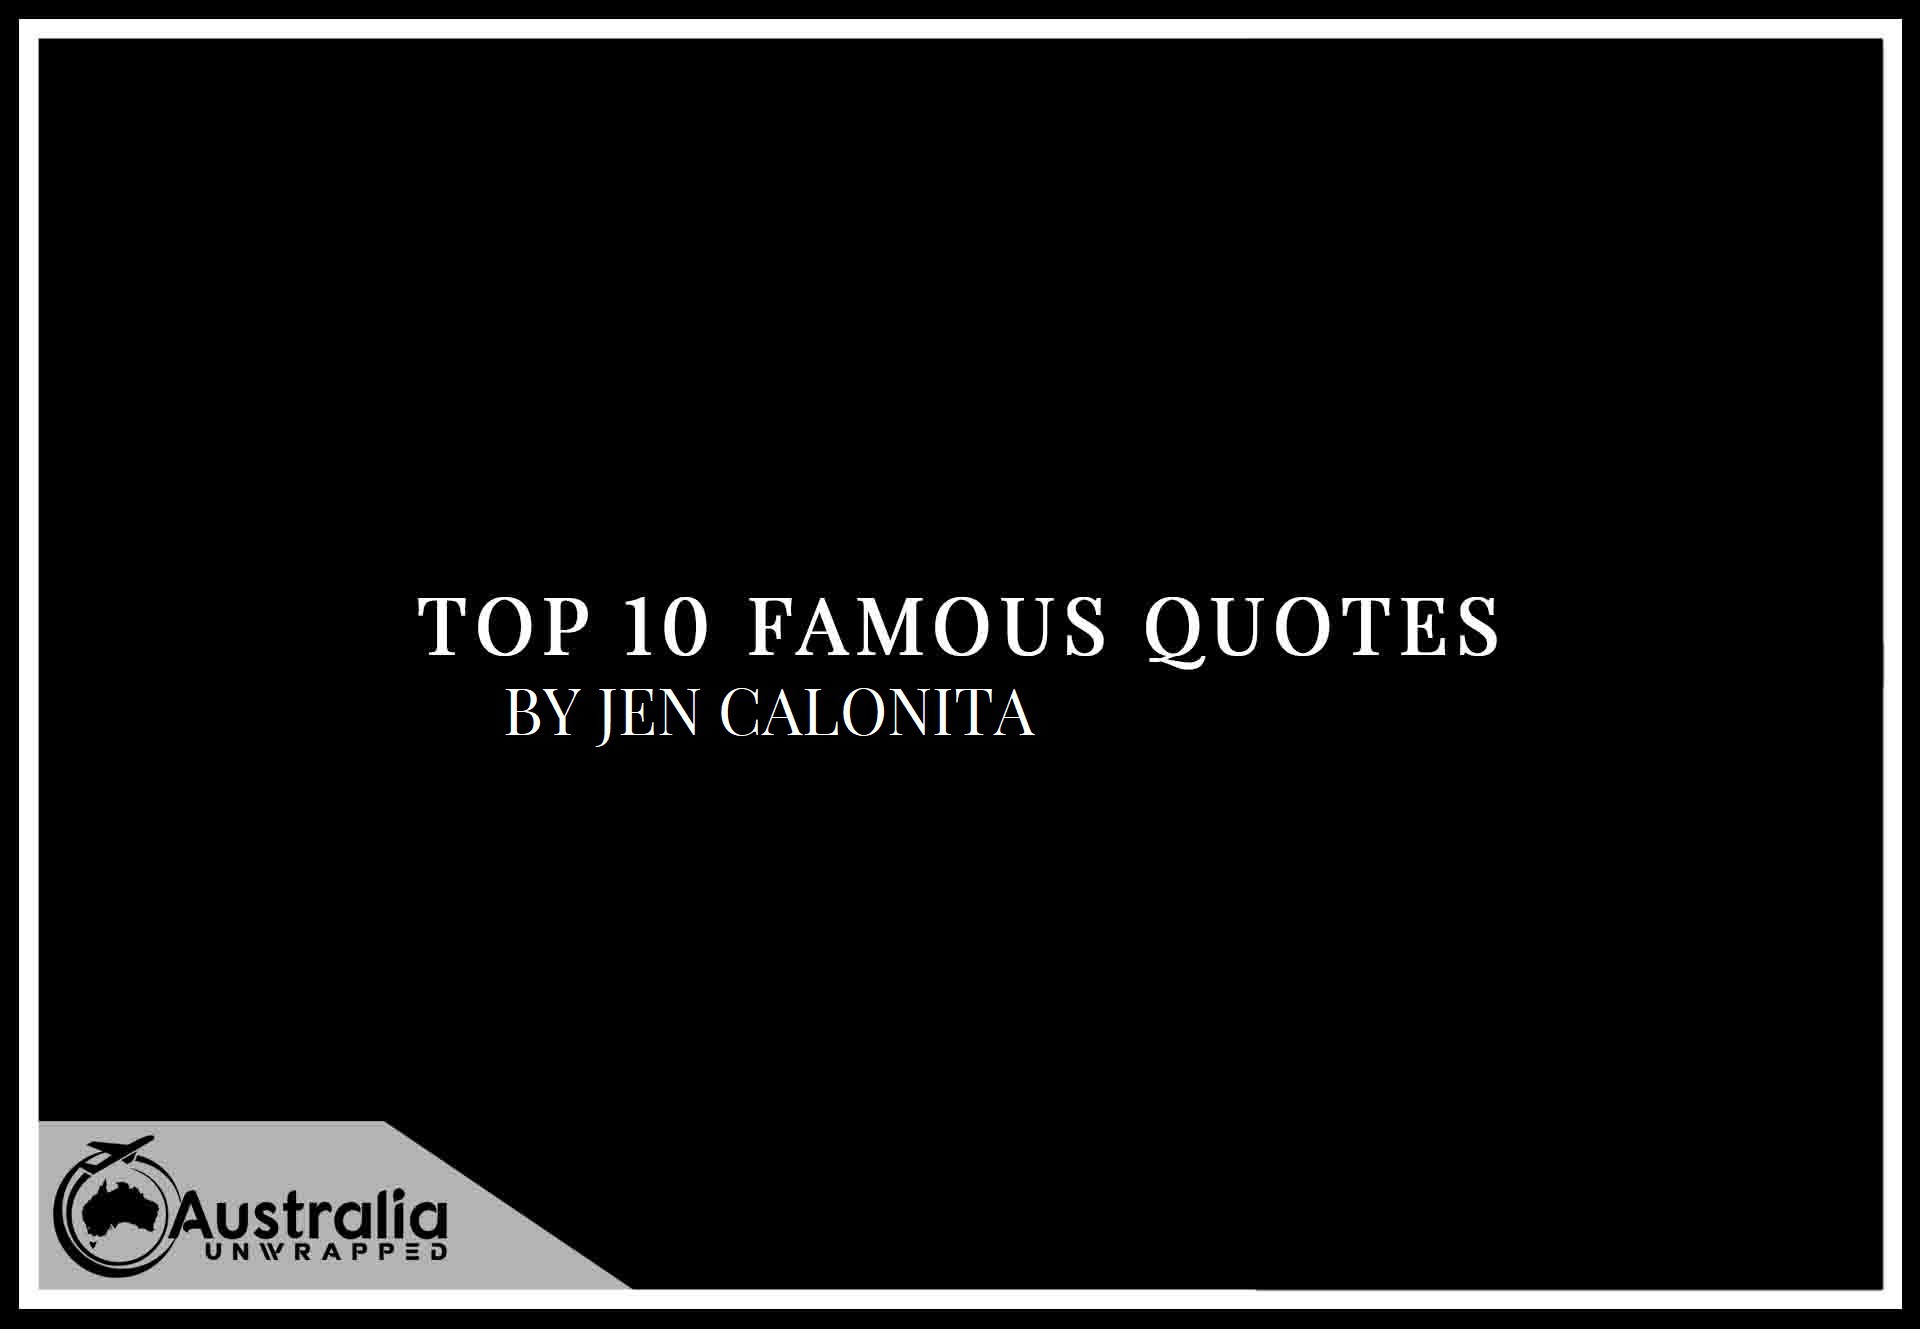 Top 10 Famous Quotes by Author Jen Calonita